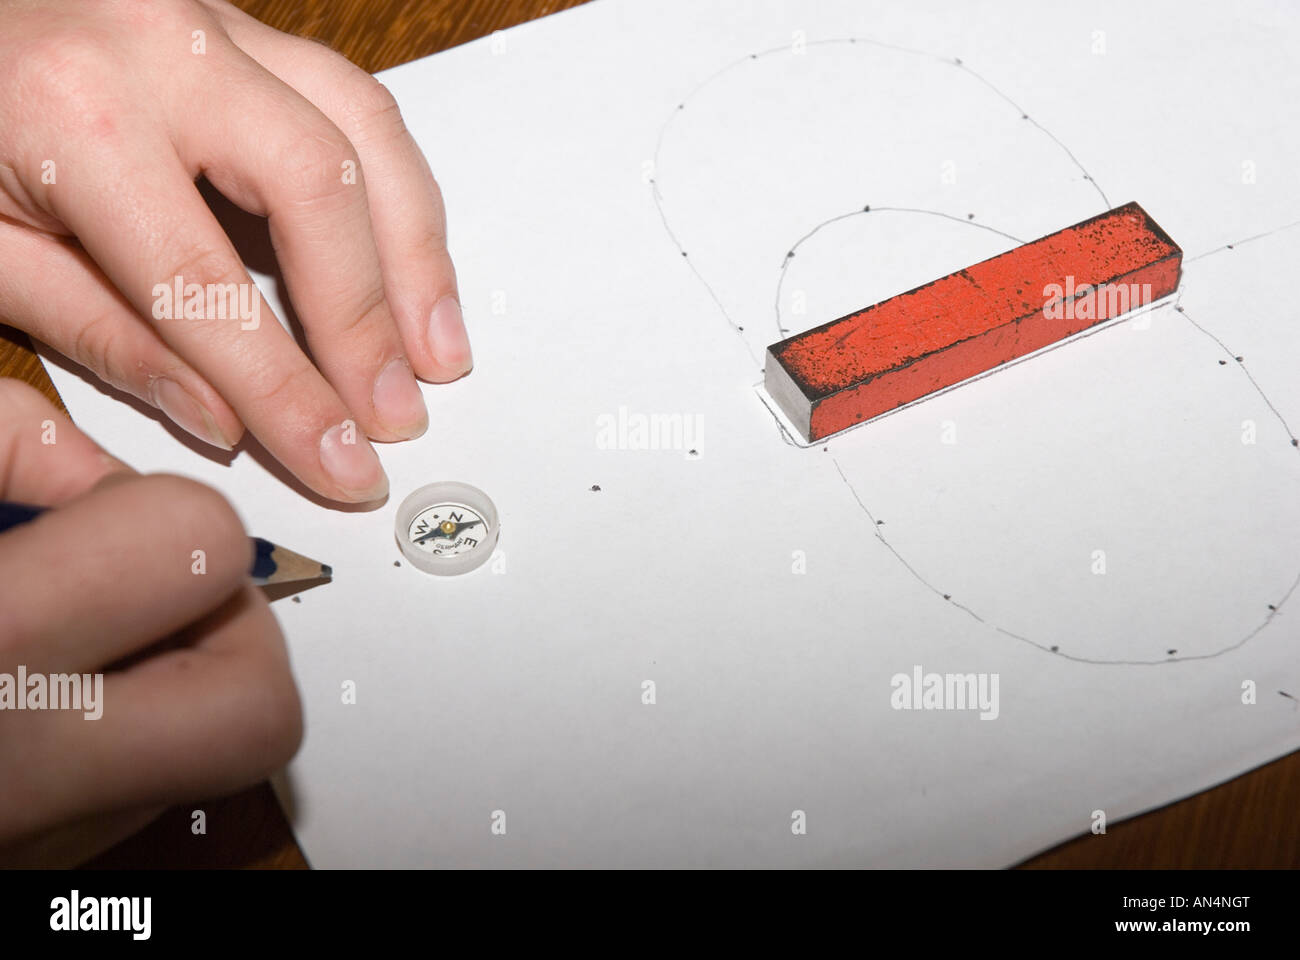 Magnetic Field Field Lines Stockfotos & Magnetic Field Field Lines ...